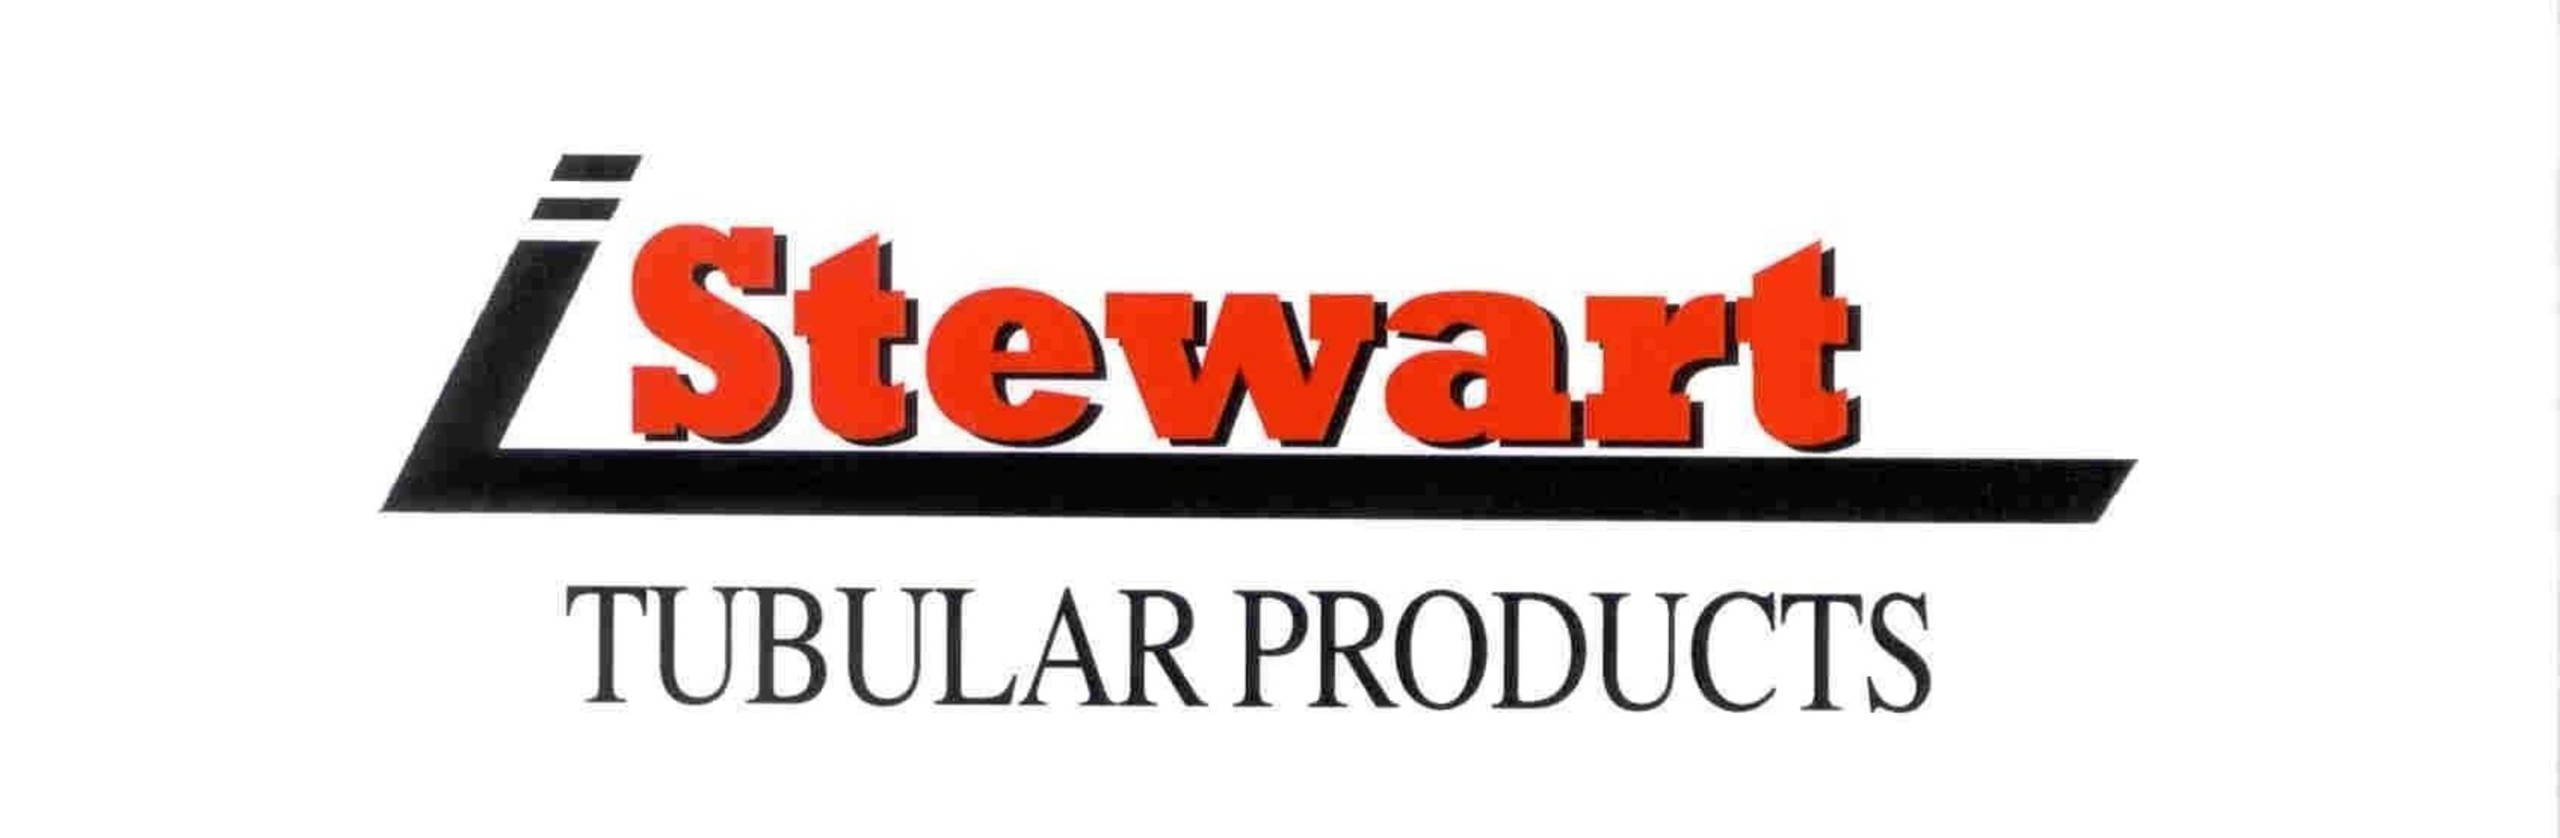 Stewart Tubular Products Logo